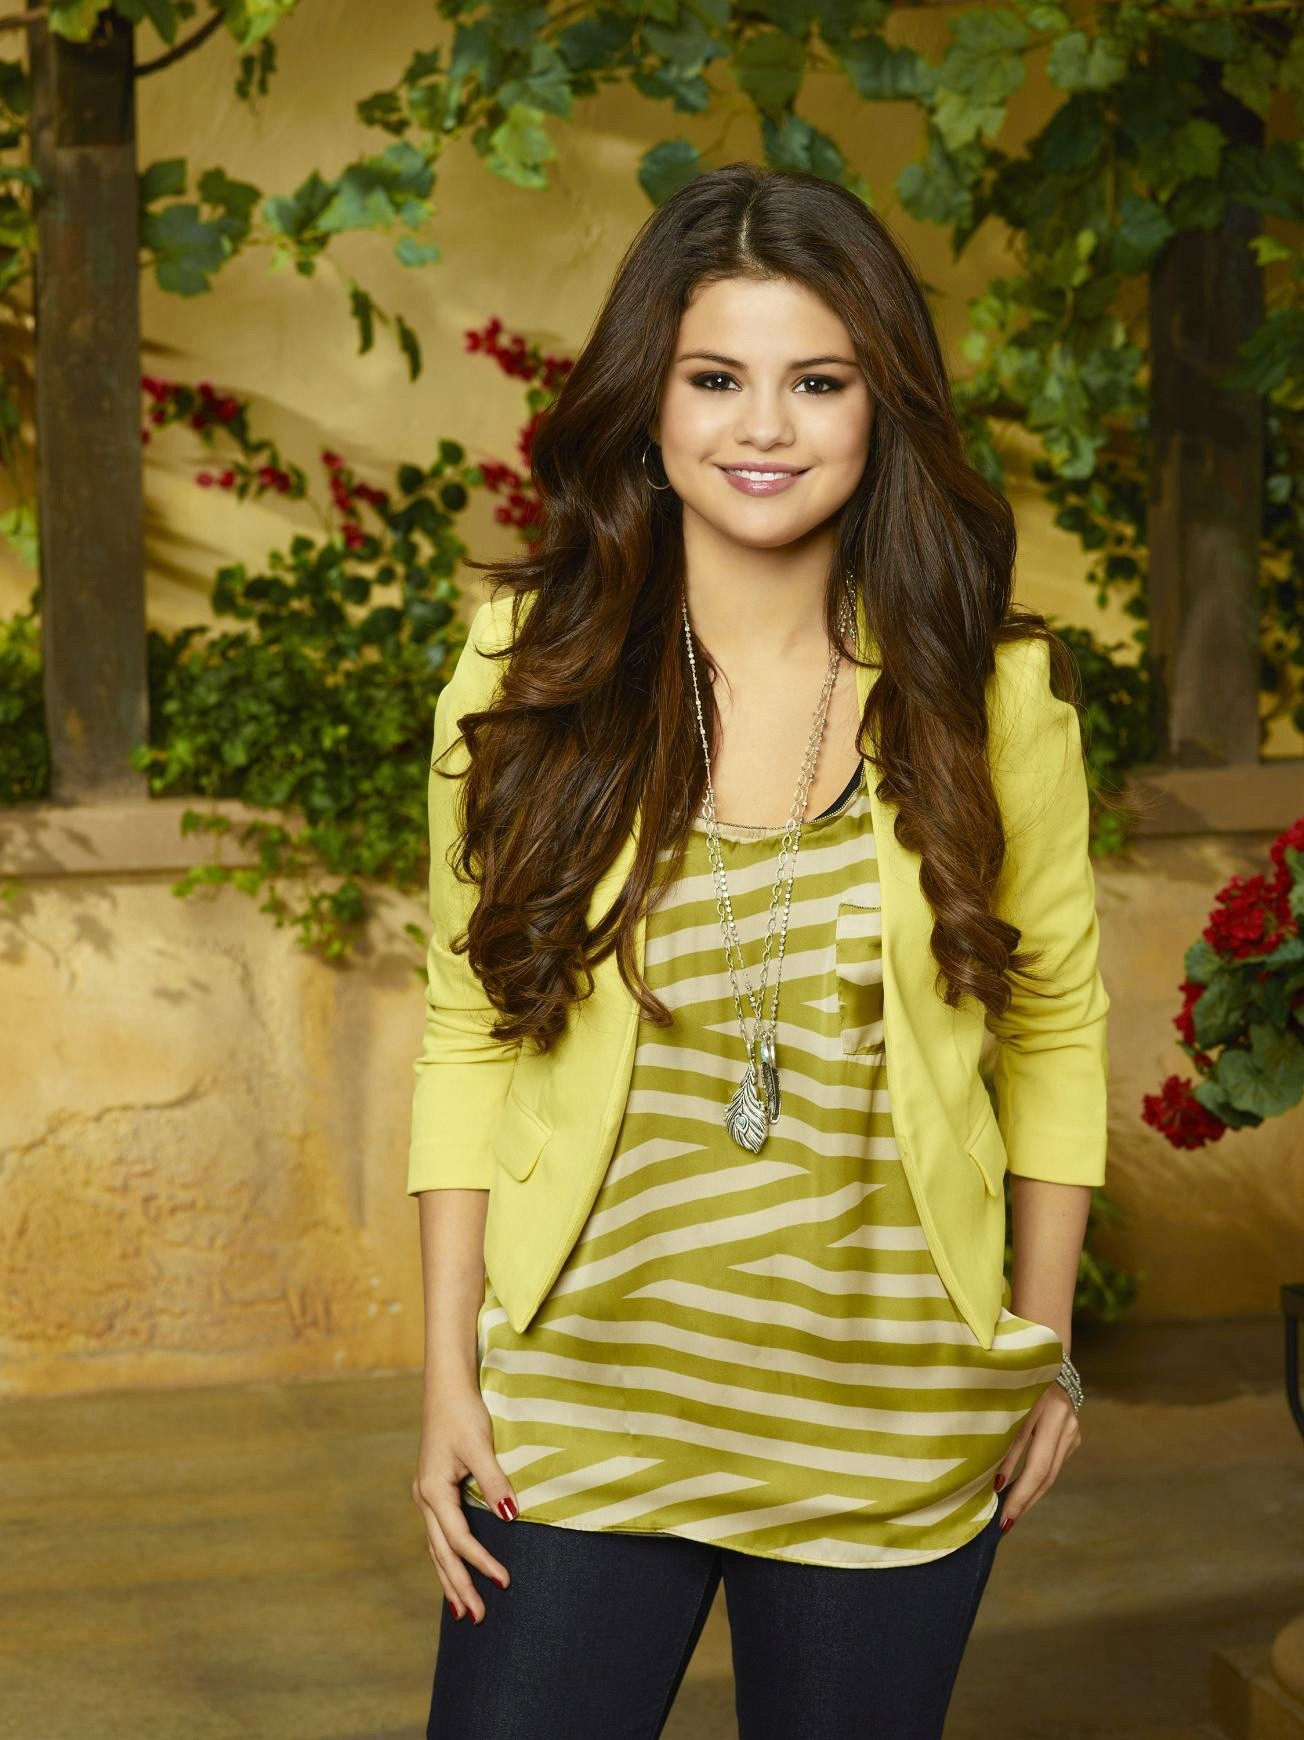 Alex Russo Wizards Of Waverly Place Wiki Fandom Powered By Wikia